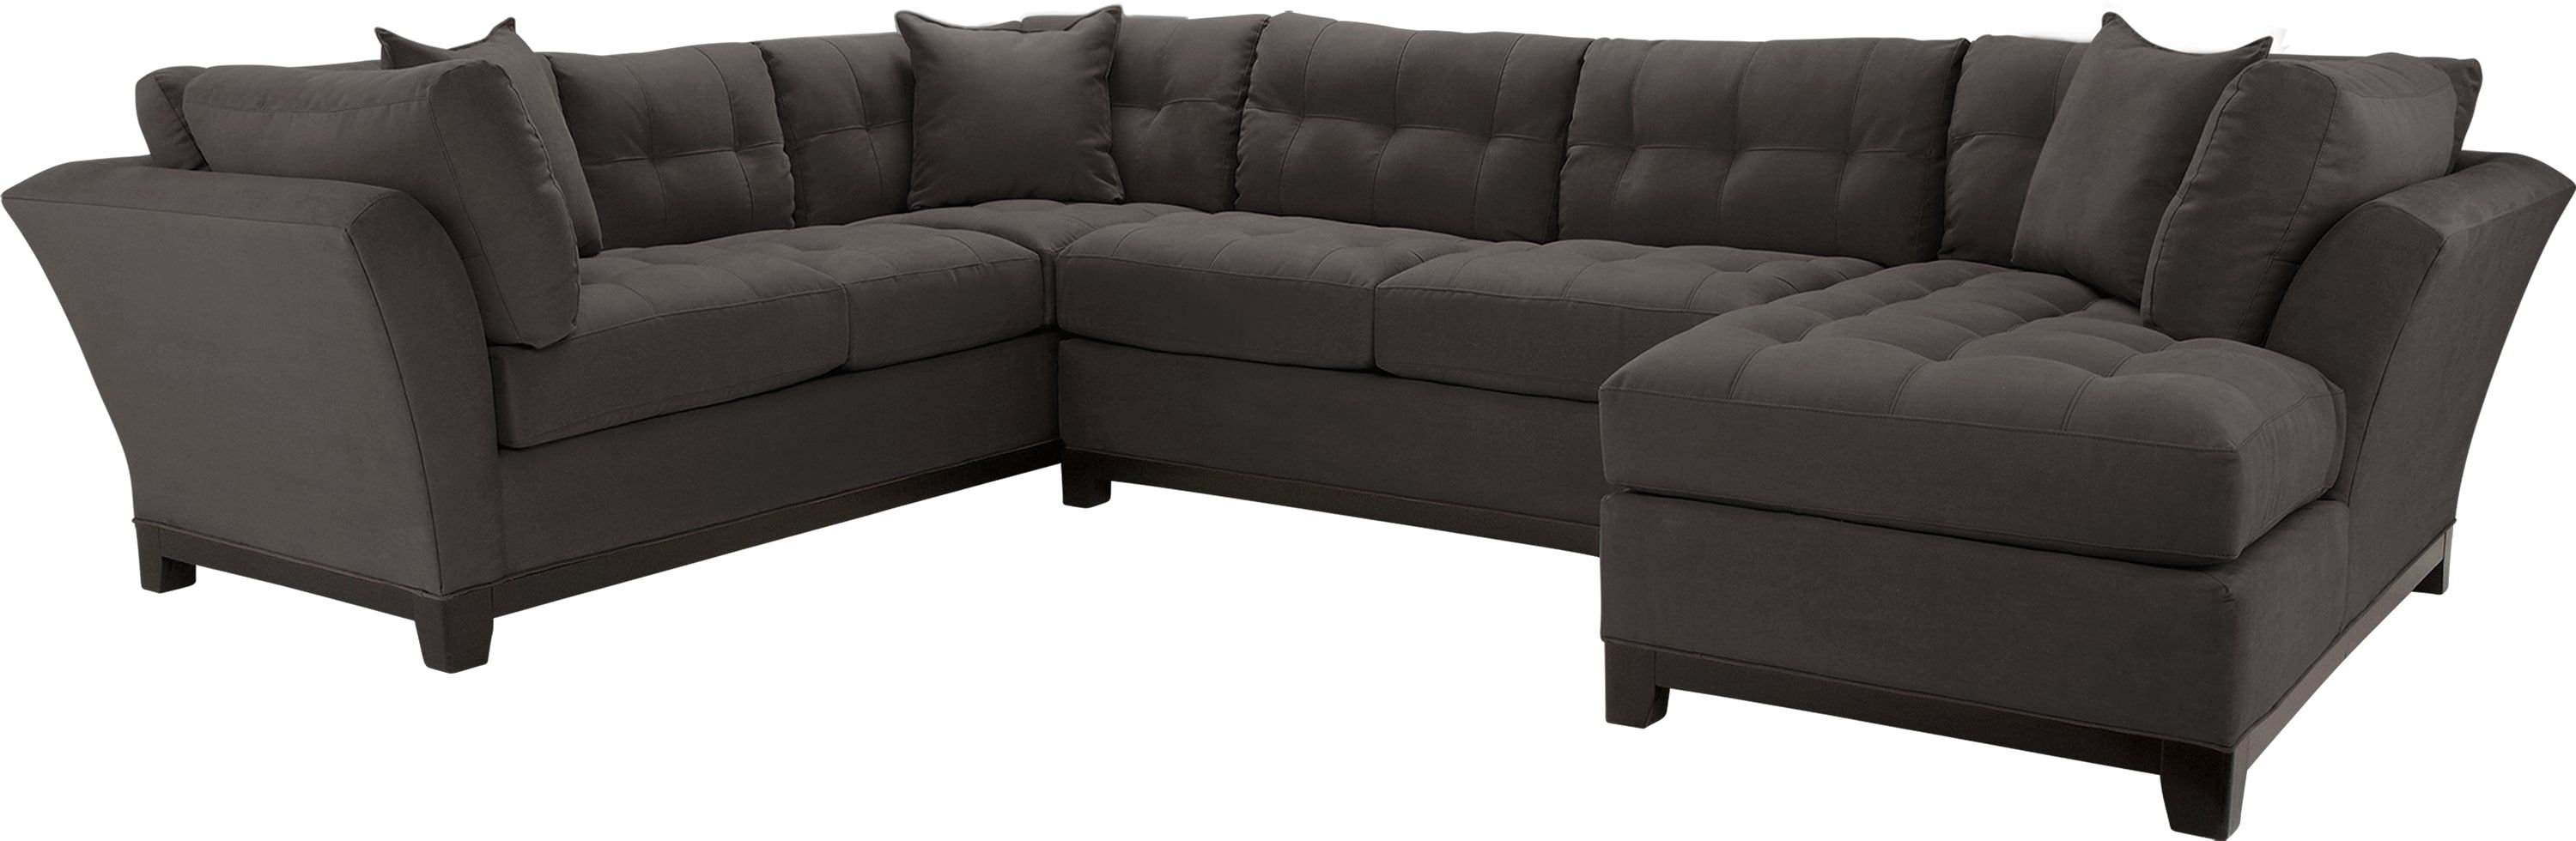 Cindy Crawford Home Metropolis Slate 3 Pc Sectional Comfy Couch In